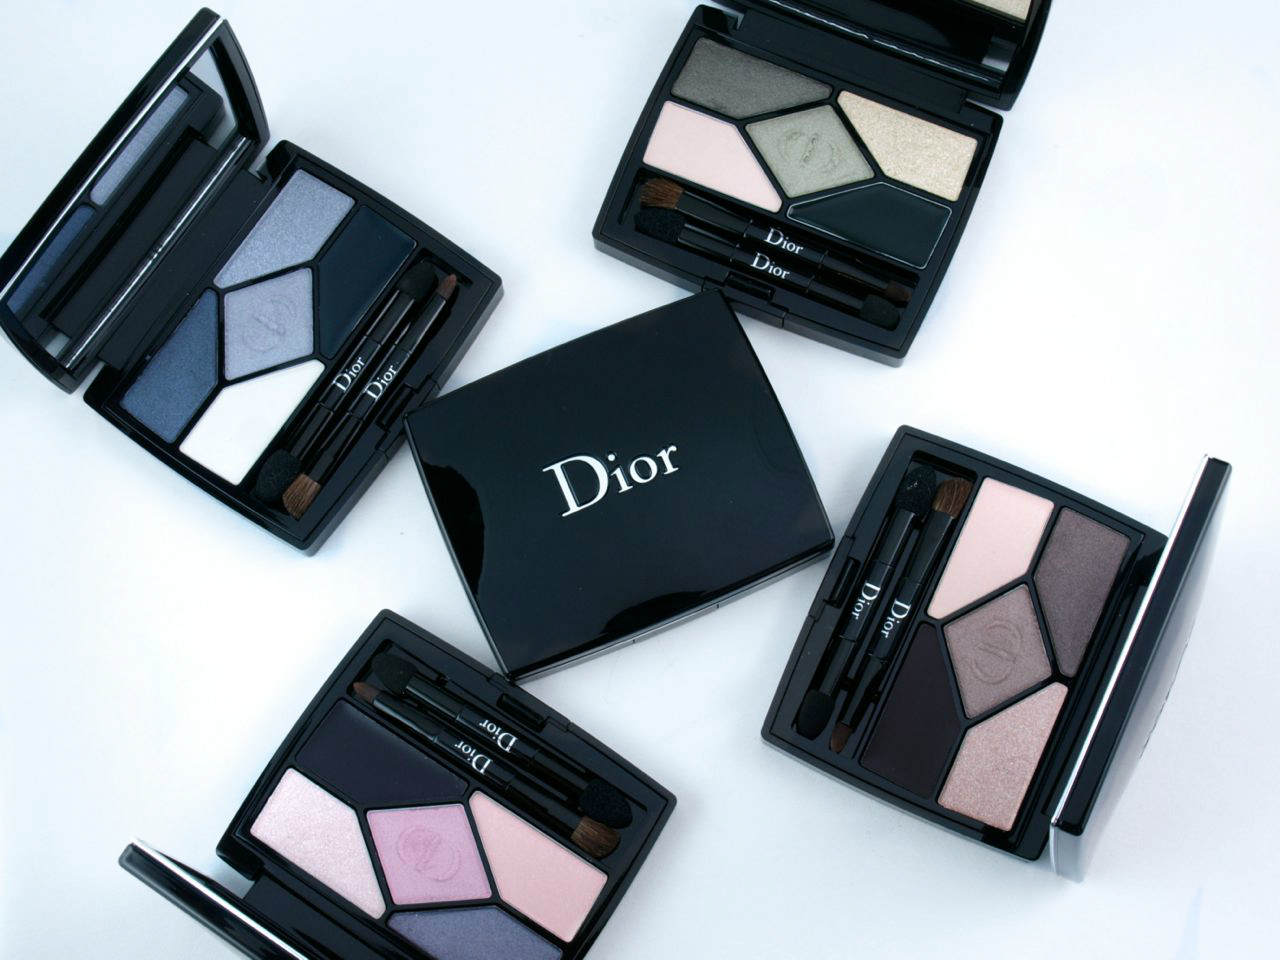 new dior diorshow 5 couleurs designer eyeshadow palettes review and swatches the happy sloths. Black Bedroom Furniture Sets. Home Design Ideas